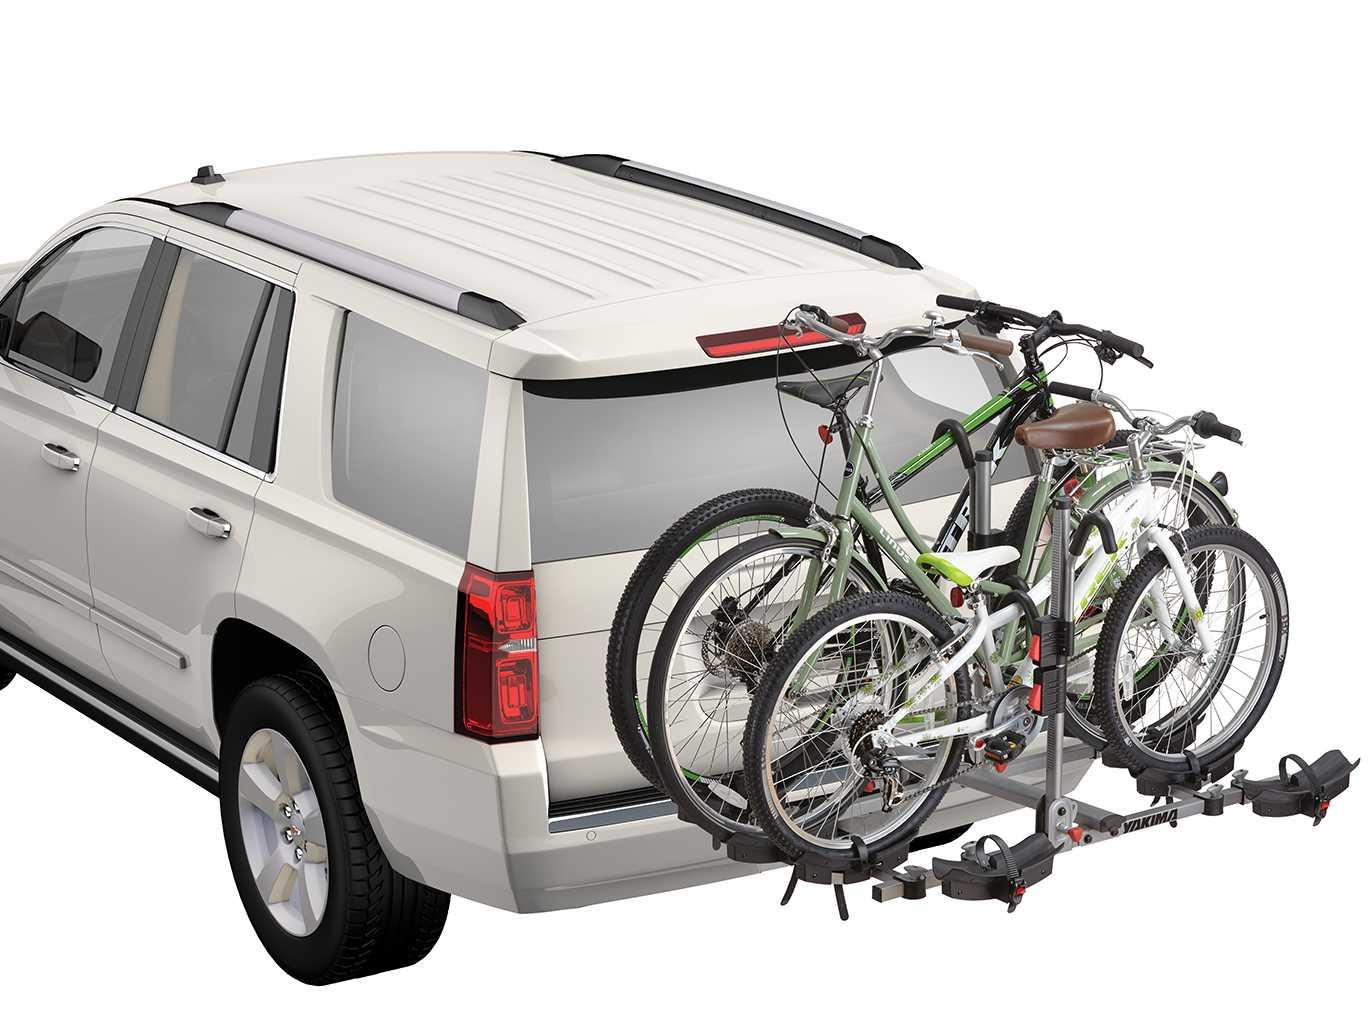 Amazon.com : Yakima - FourTimer Hitch Mounted Bike Rack